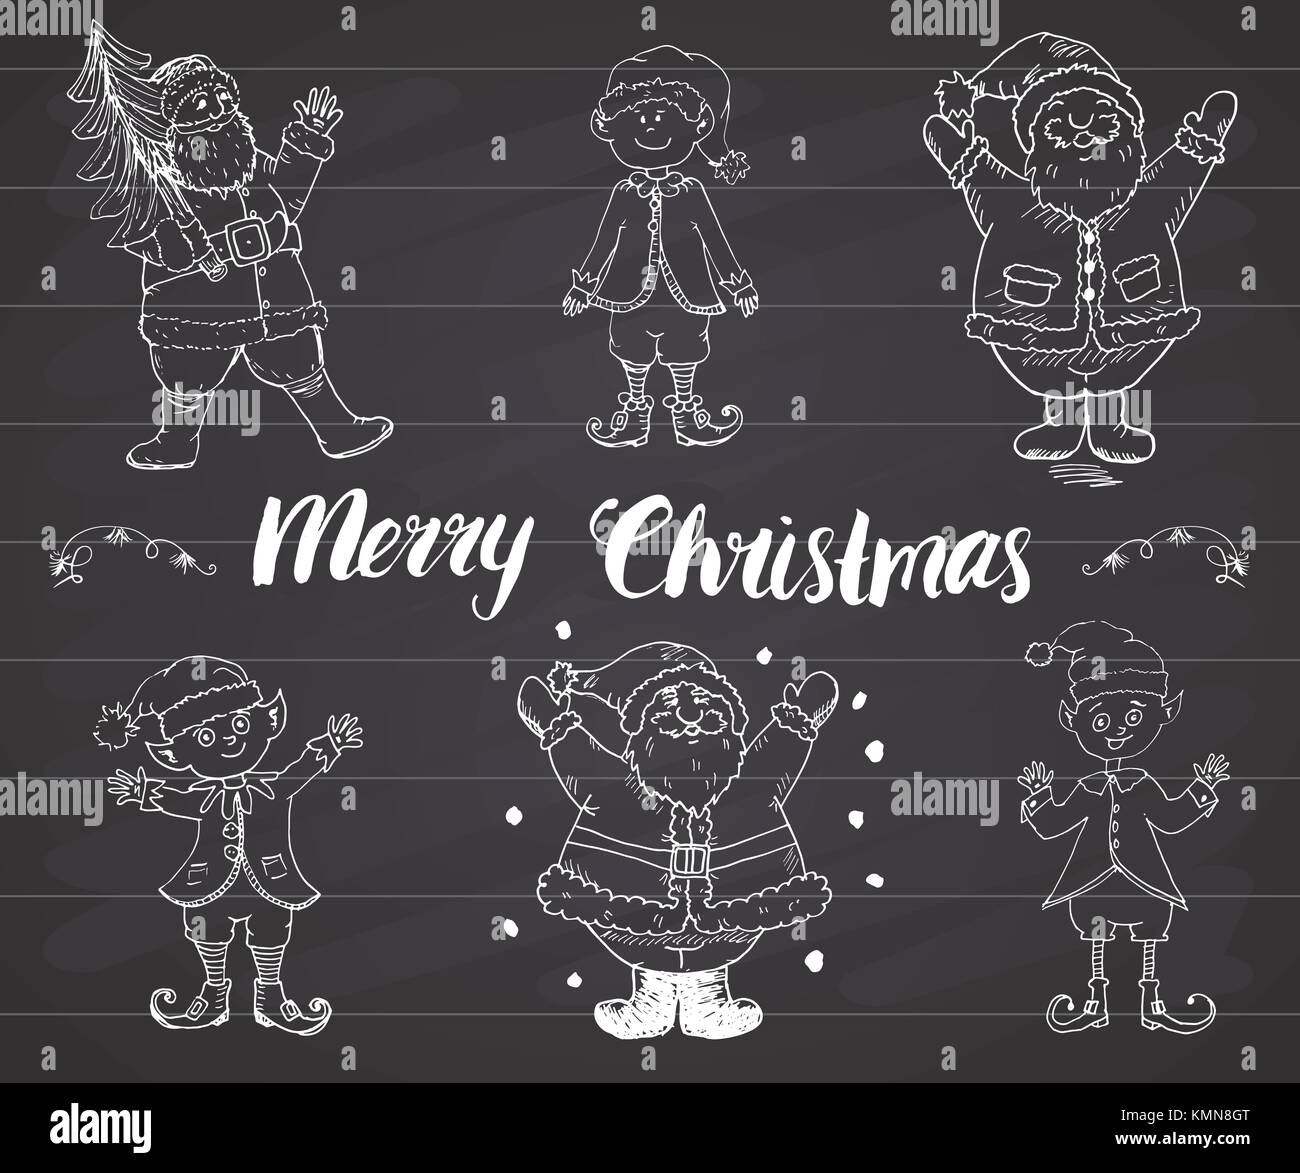 merry christmas hand lettering chalk board stock photos  u0026 merry christmas hand lettering chalk